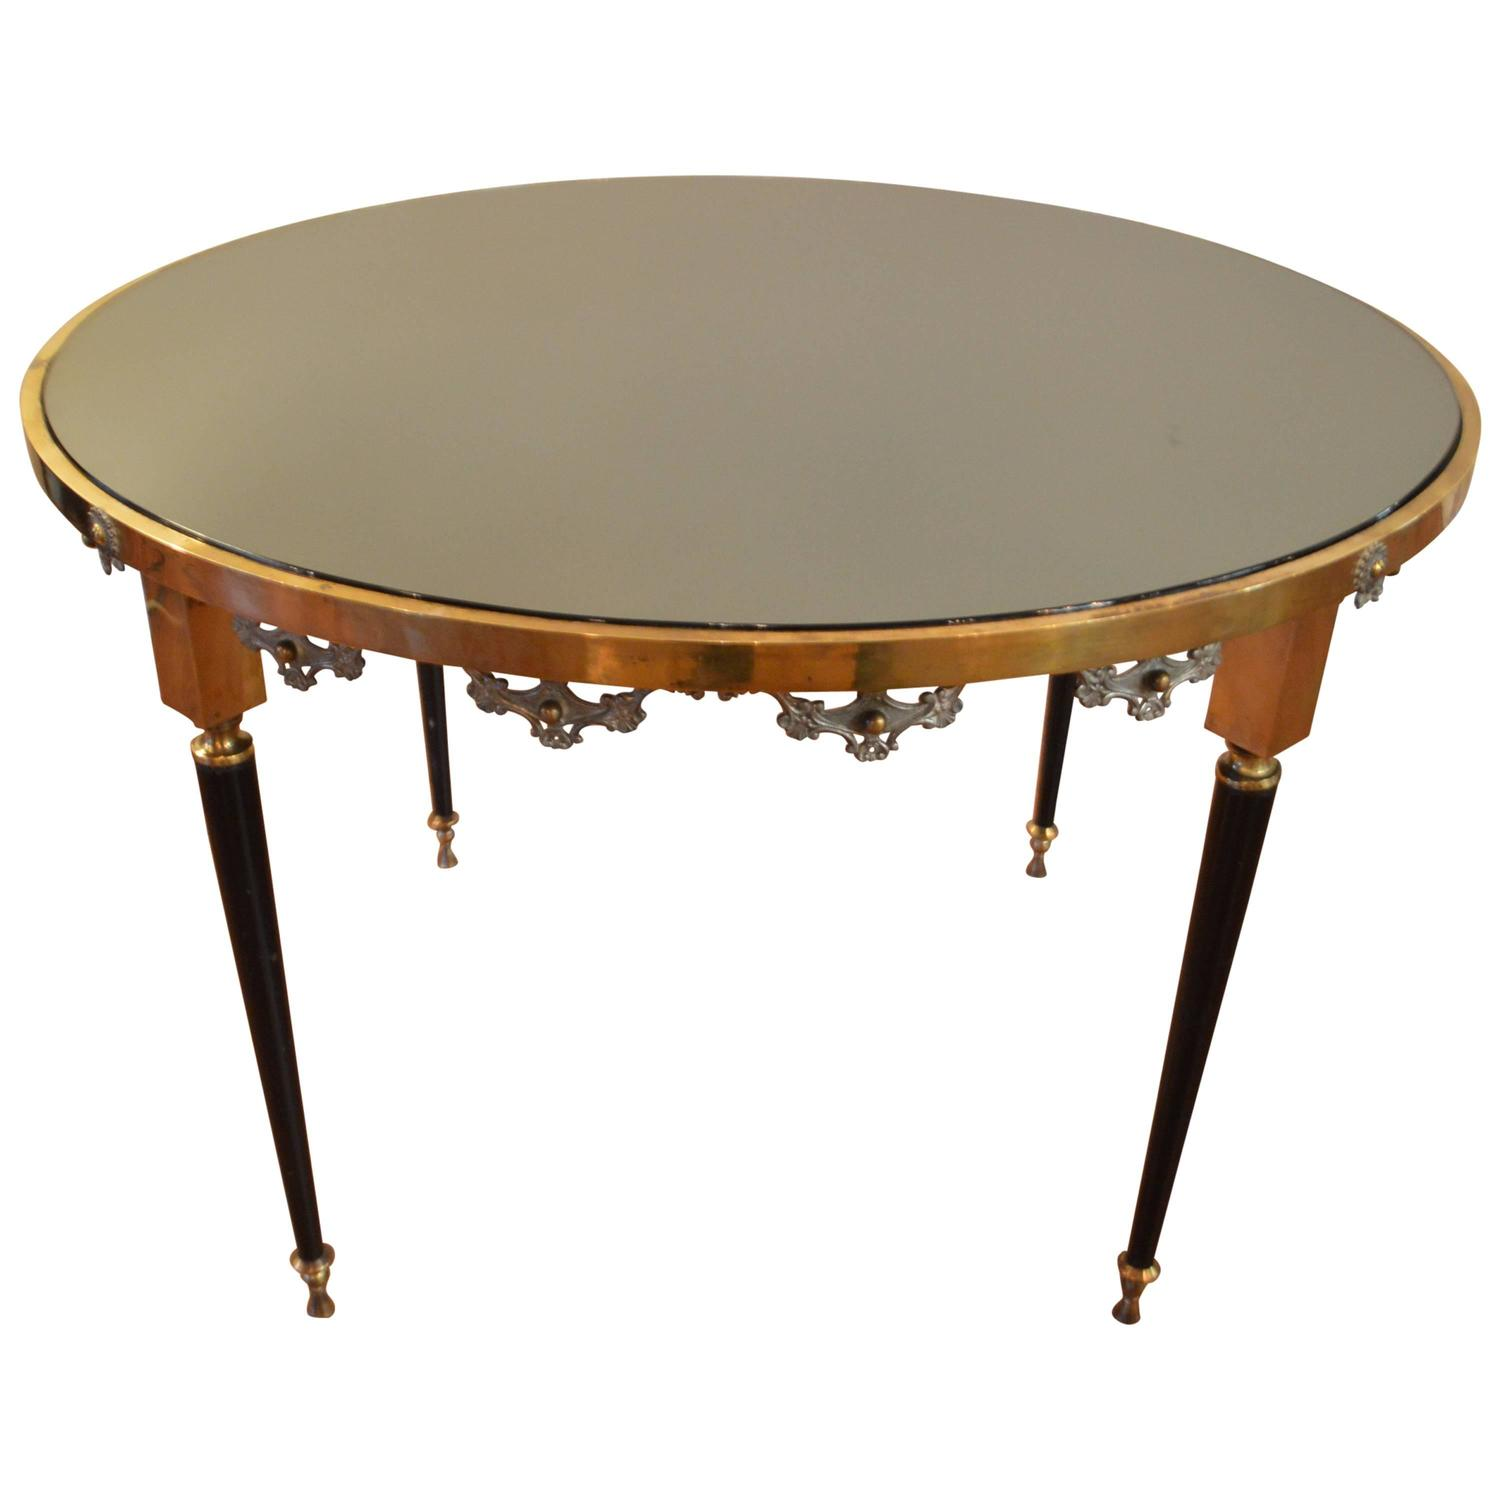 French modernist round cocktail table at 1stdibs Round cocktail table